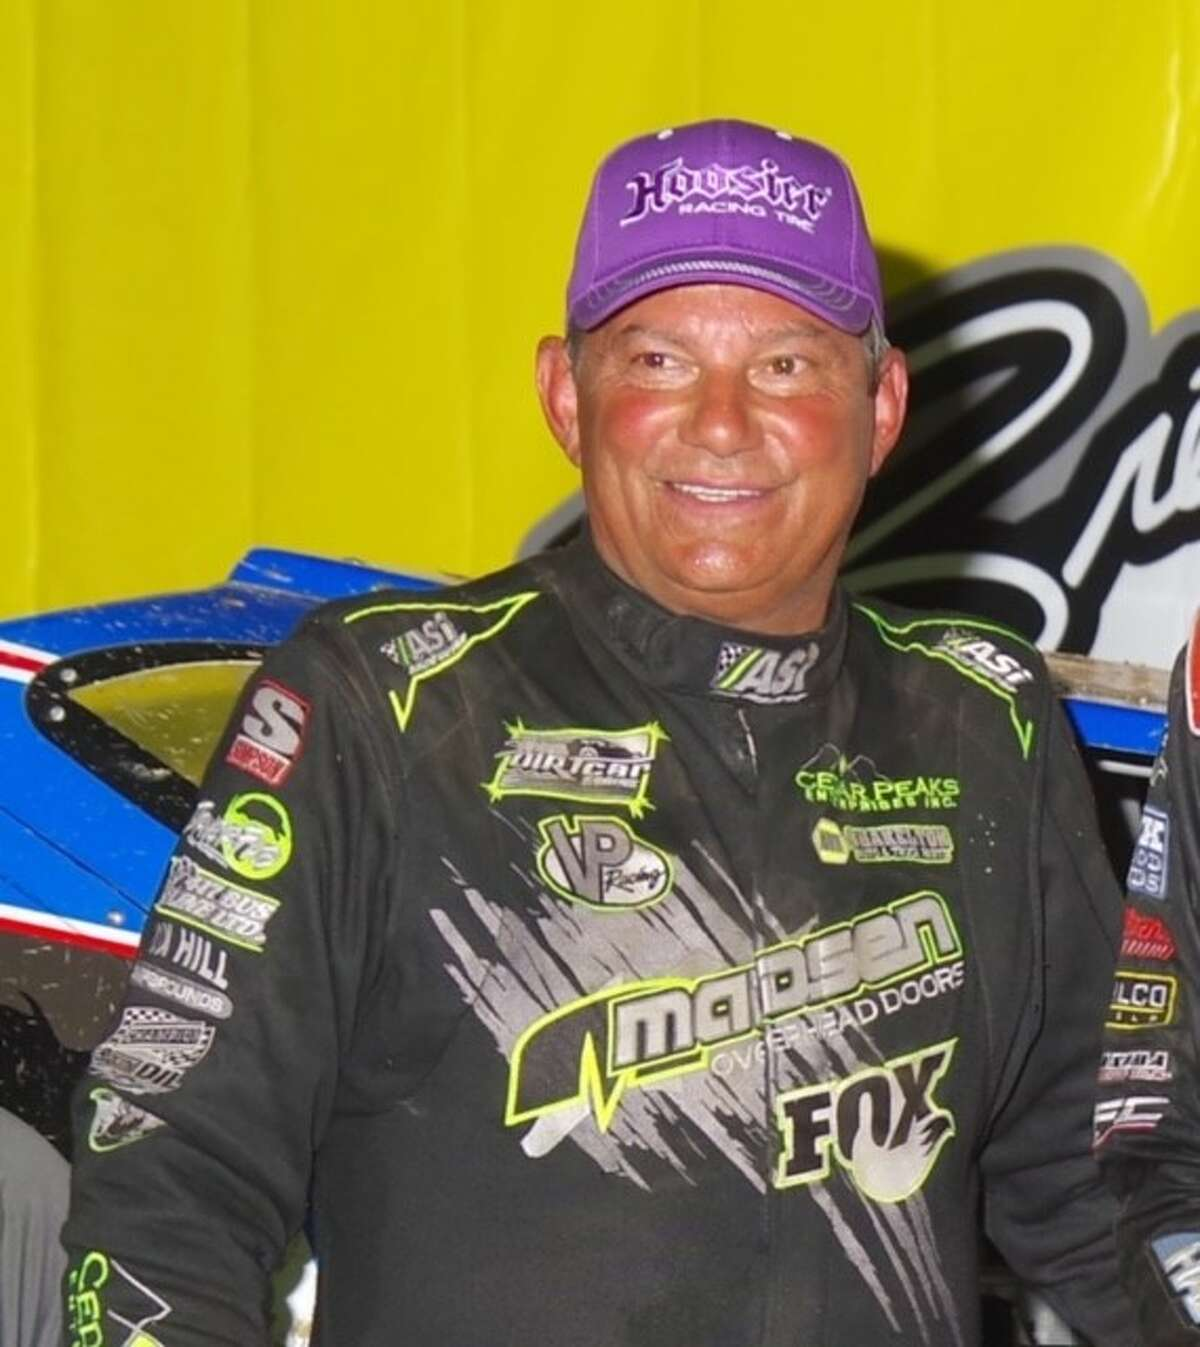 Brett Hearn, director of motorsports at Orange County Fair Speedway. (Courtesy of Mark Brown Photography)